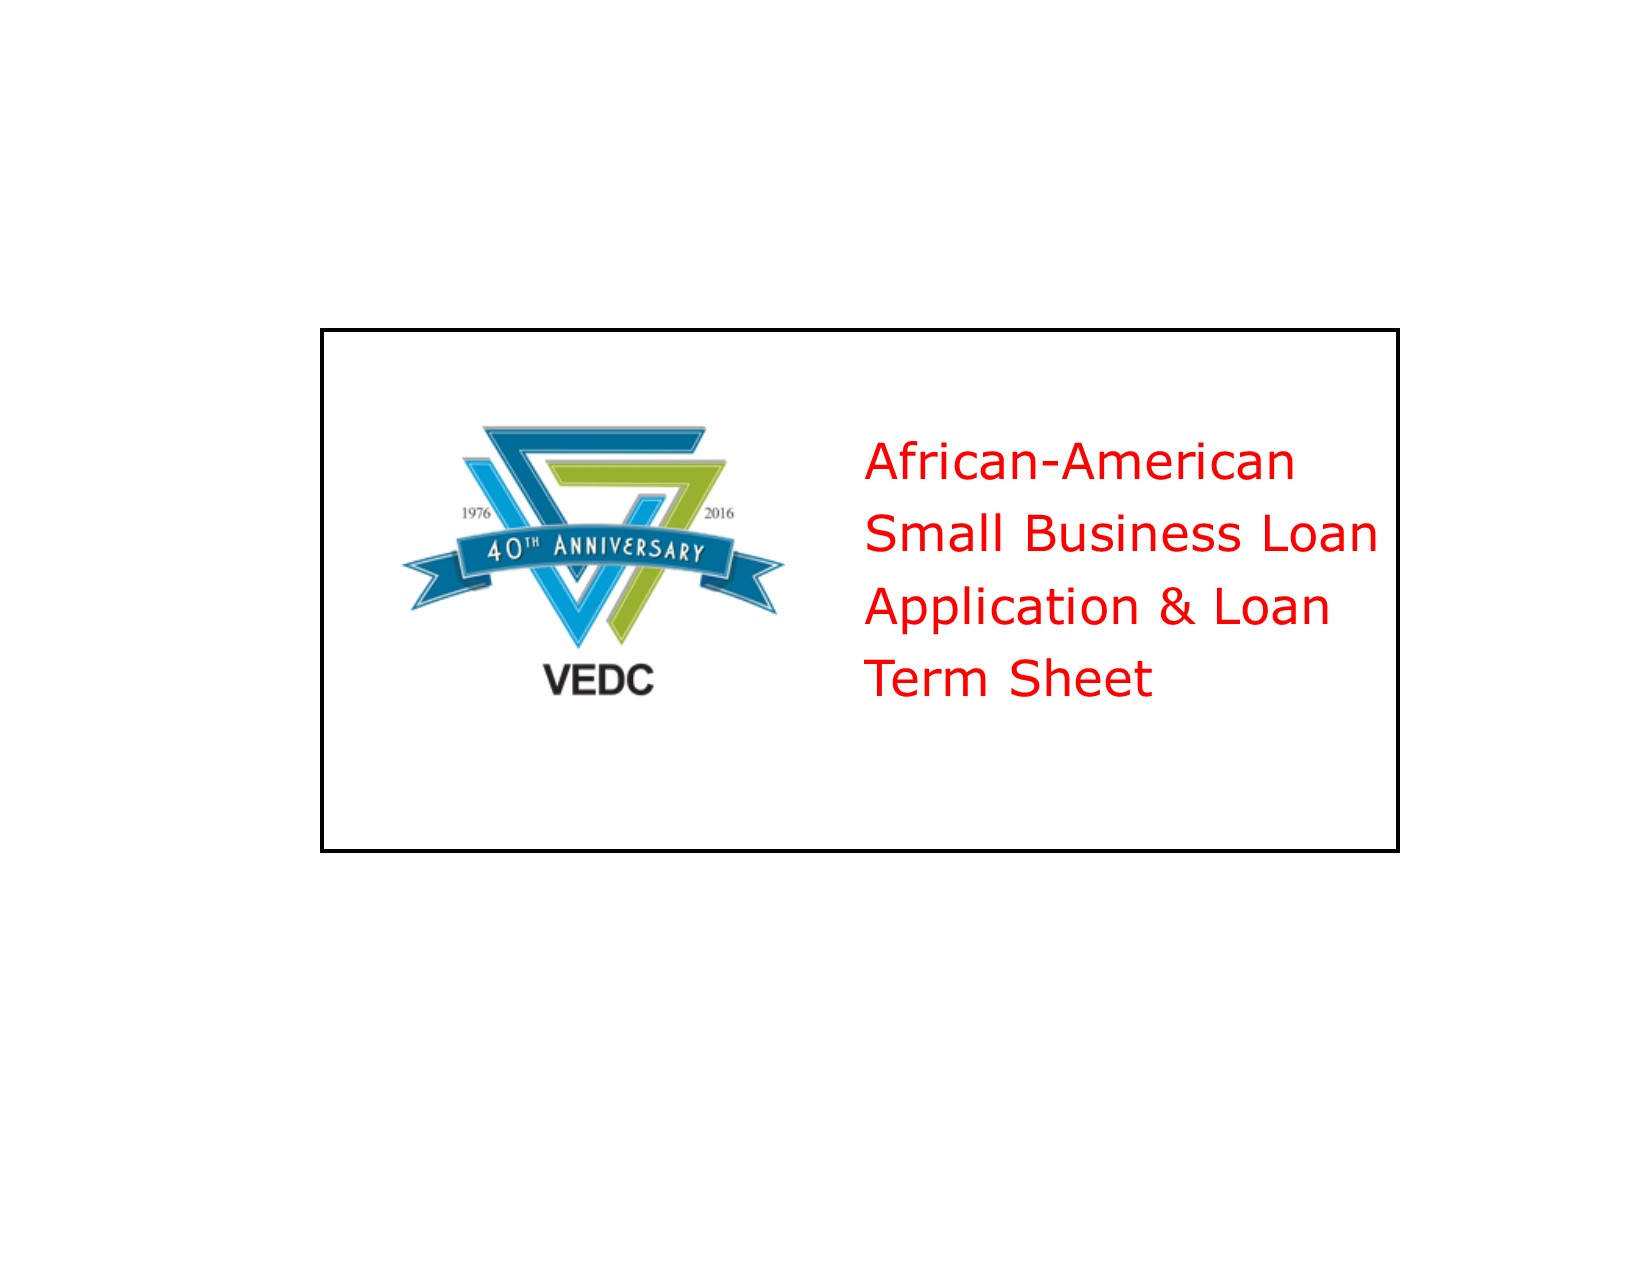 VEDC Application